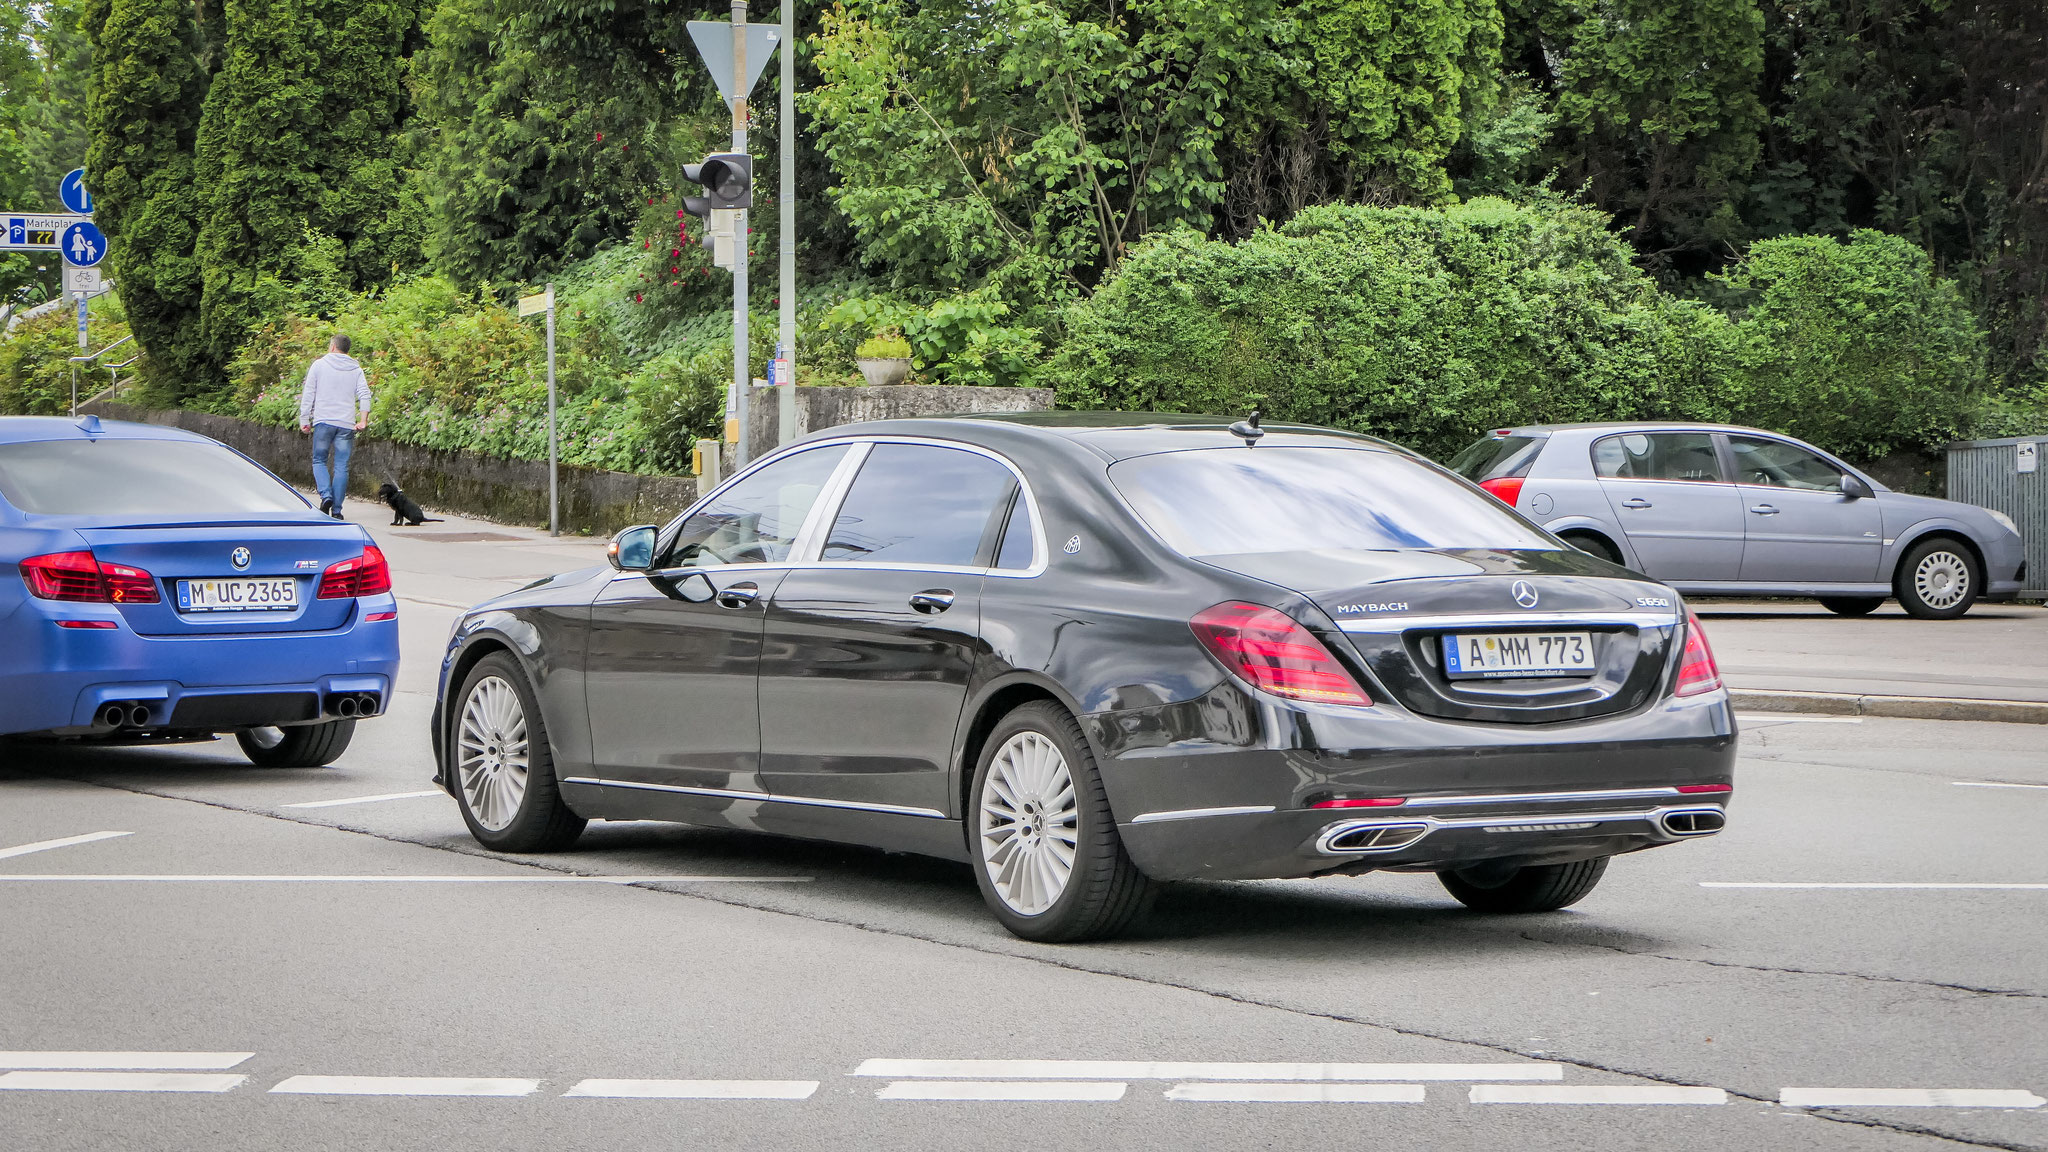 Mercedes Maybach S650 - A-MM-773